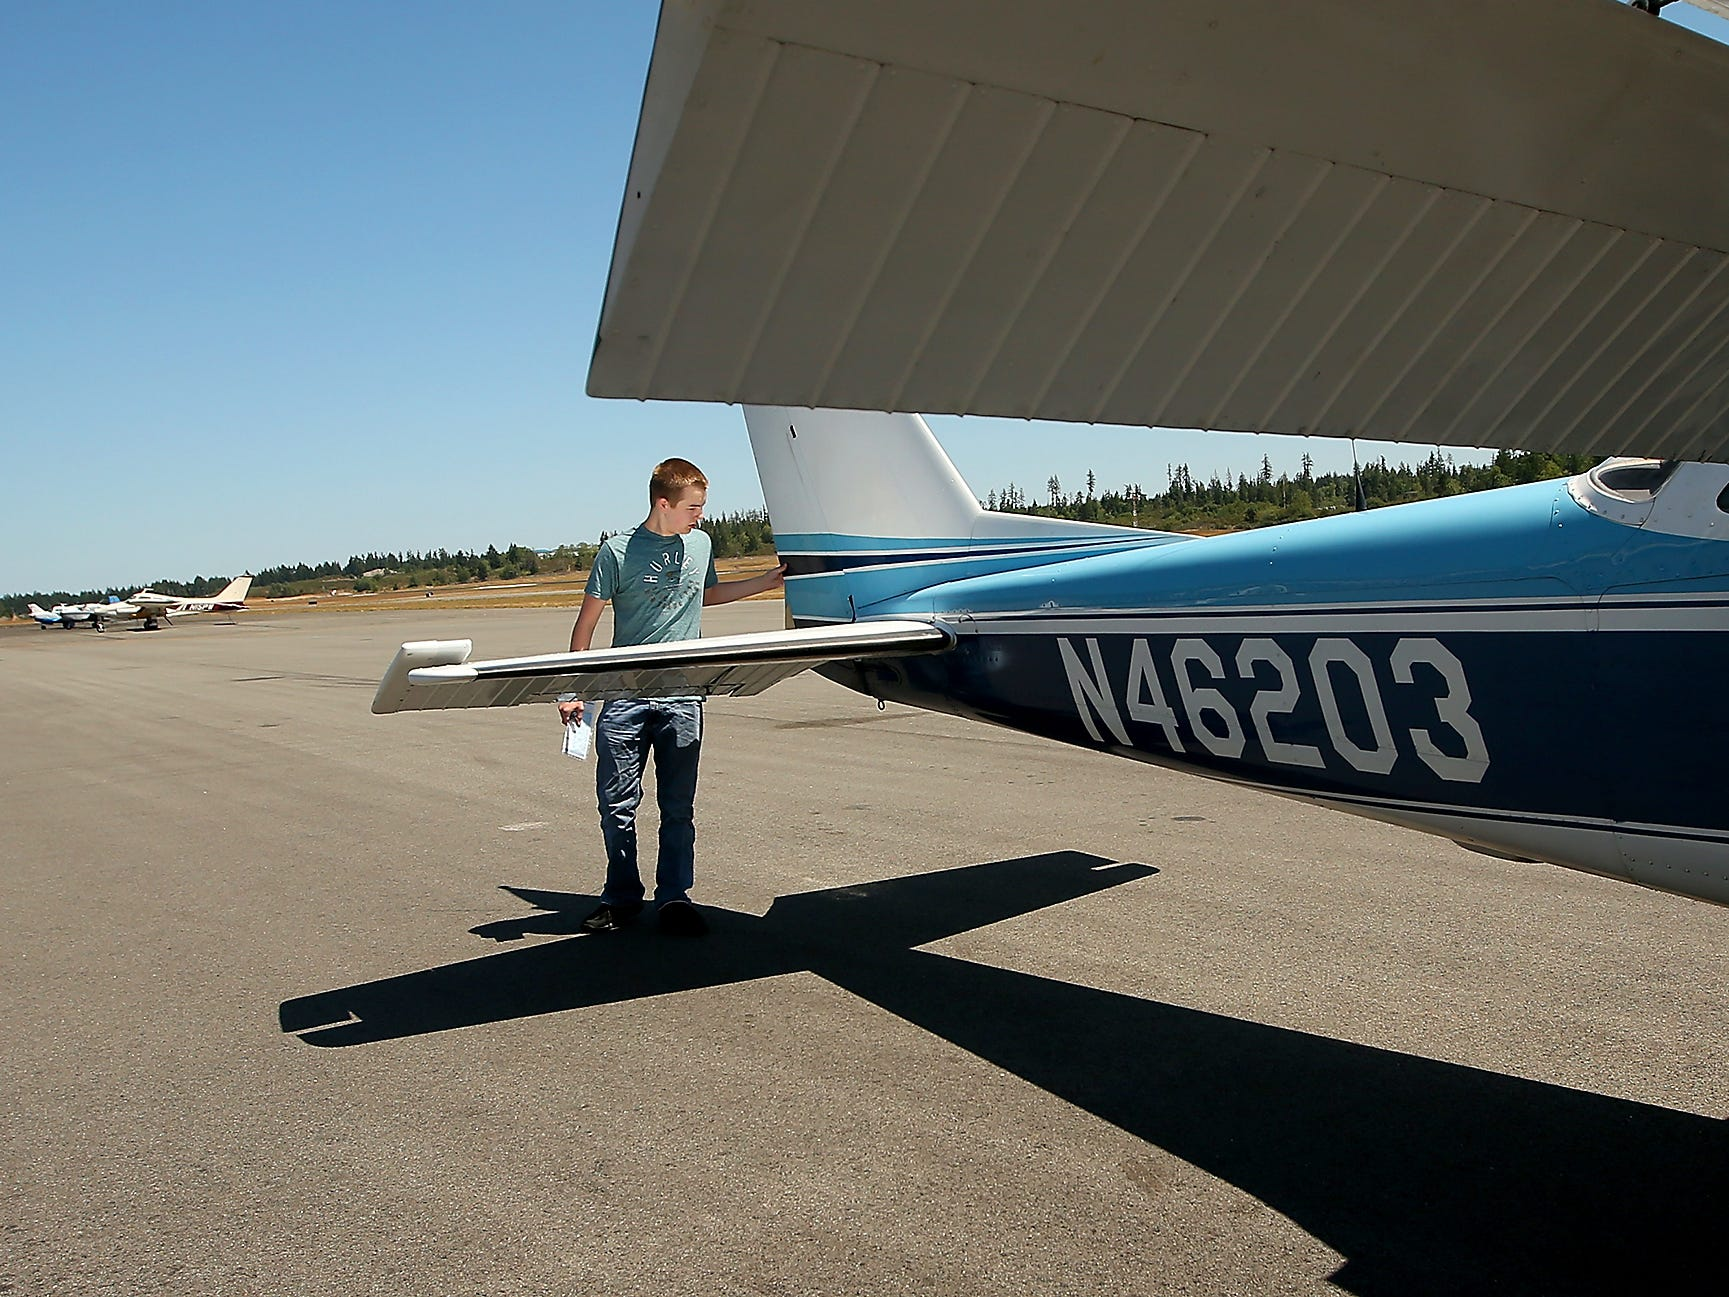 Bremerton Pilots Association scholarship recipient Aidan Hurley goes through his pre-flight checklist prior to a flight at the Bremerton National Airport on Monday, July 16, 2018.